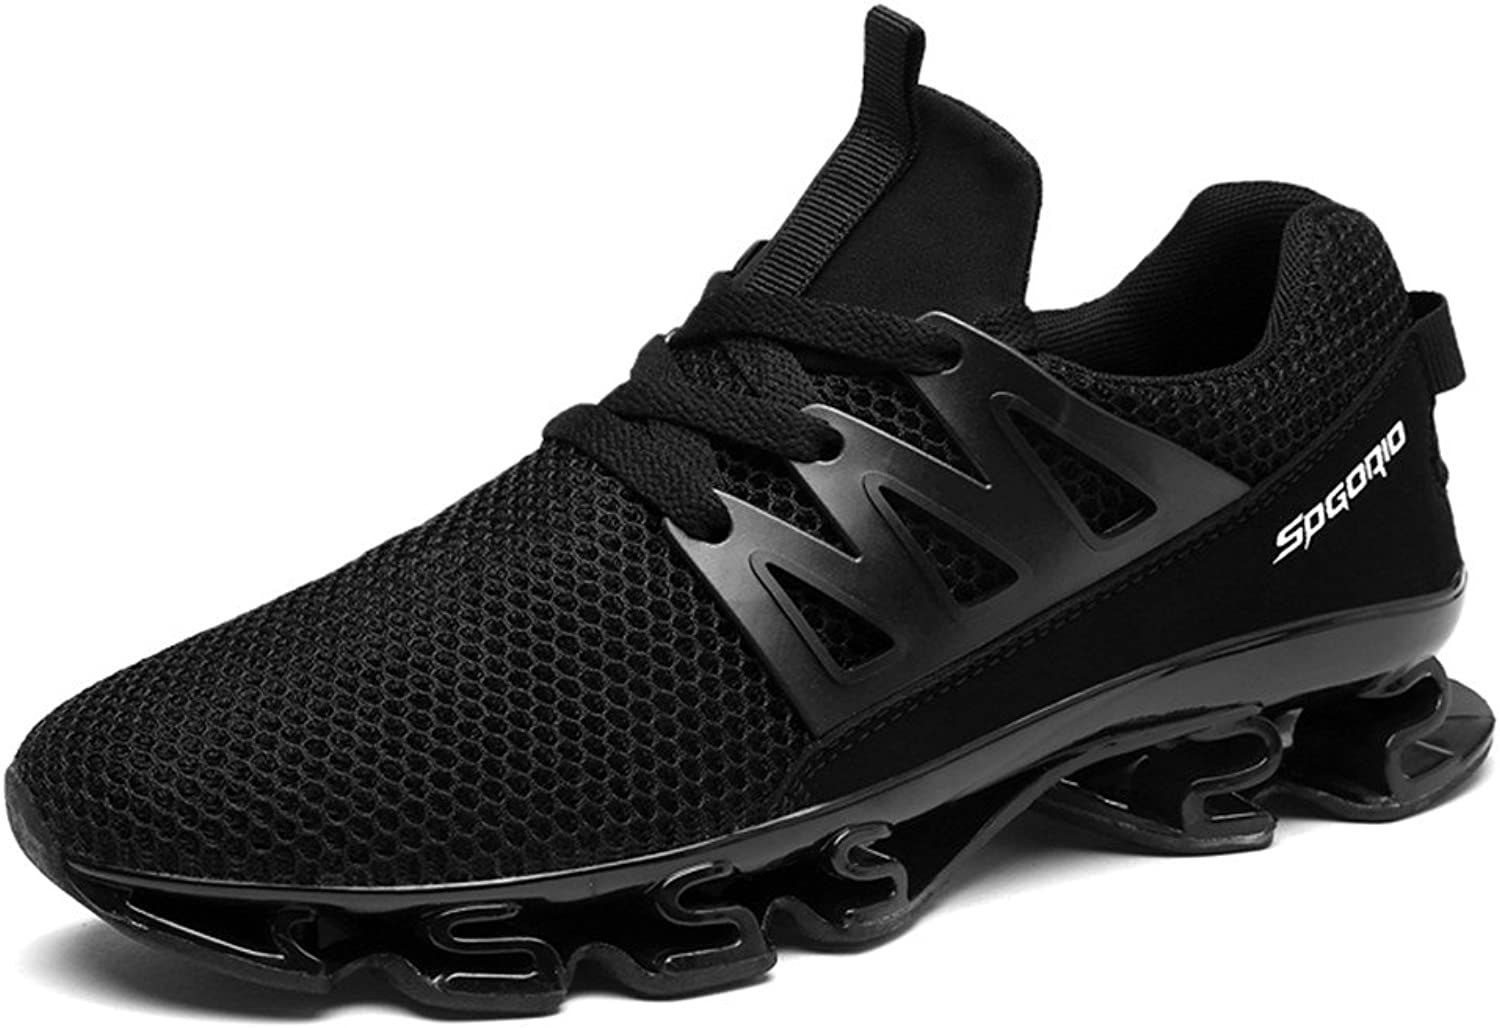 Noblespirit Men's Outdoor Sneakers Trail Running Hiking Jogging shoes WSMHSTK10-Bl44 Black